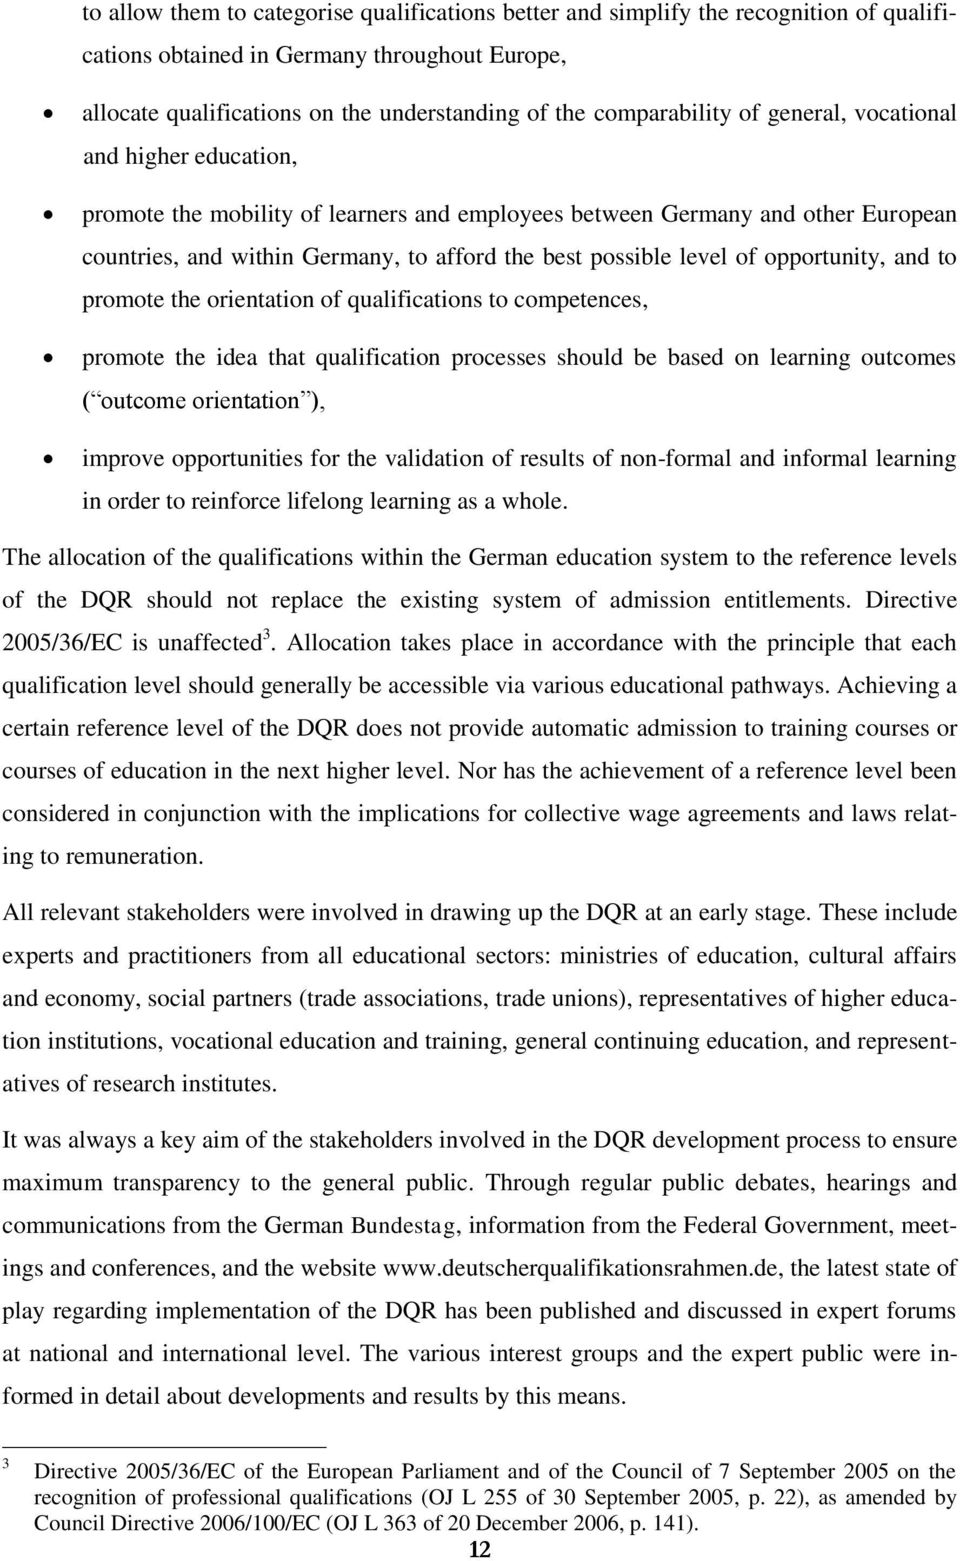 level of opportunity, and to promote the orientation of qualifications to competences, promote the idea that qualification processes should be based on learning outcomes ( outcome orientation ),